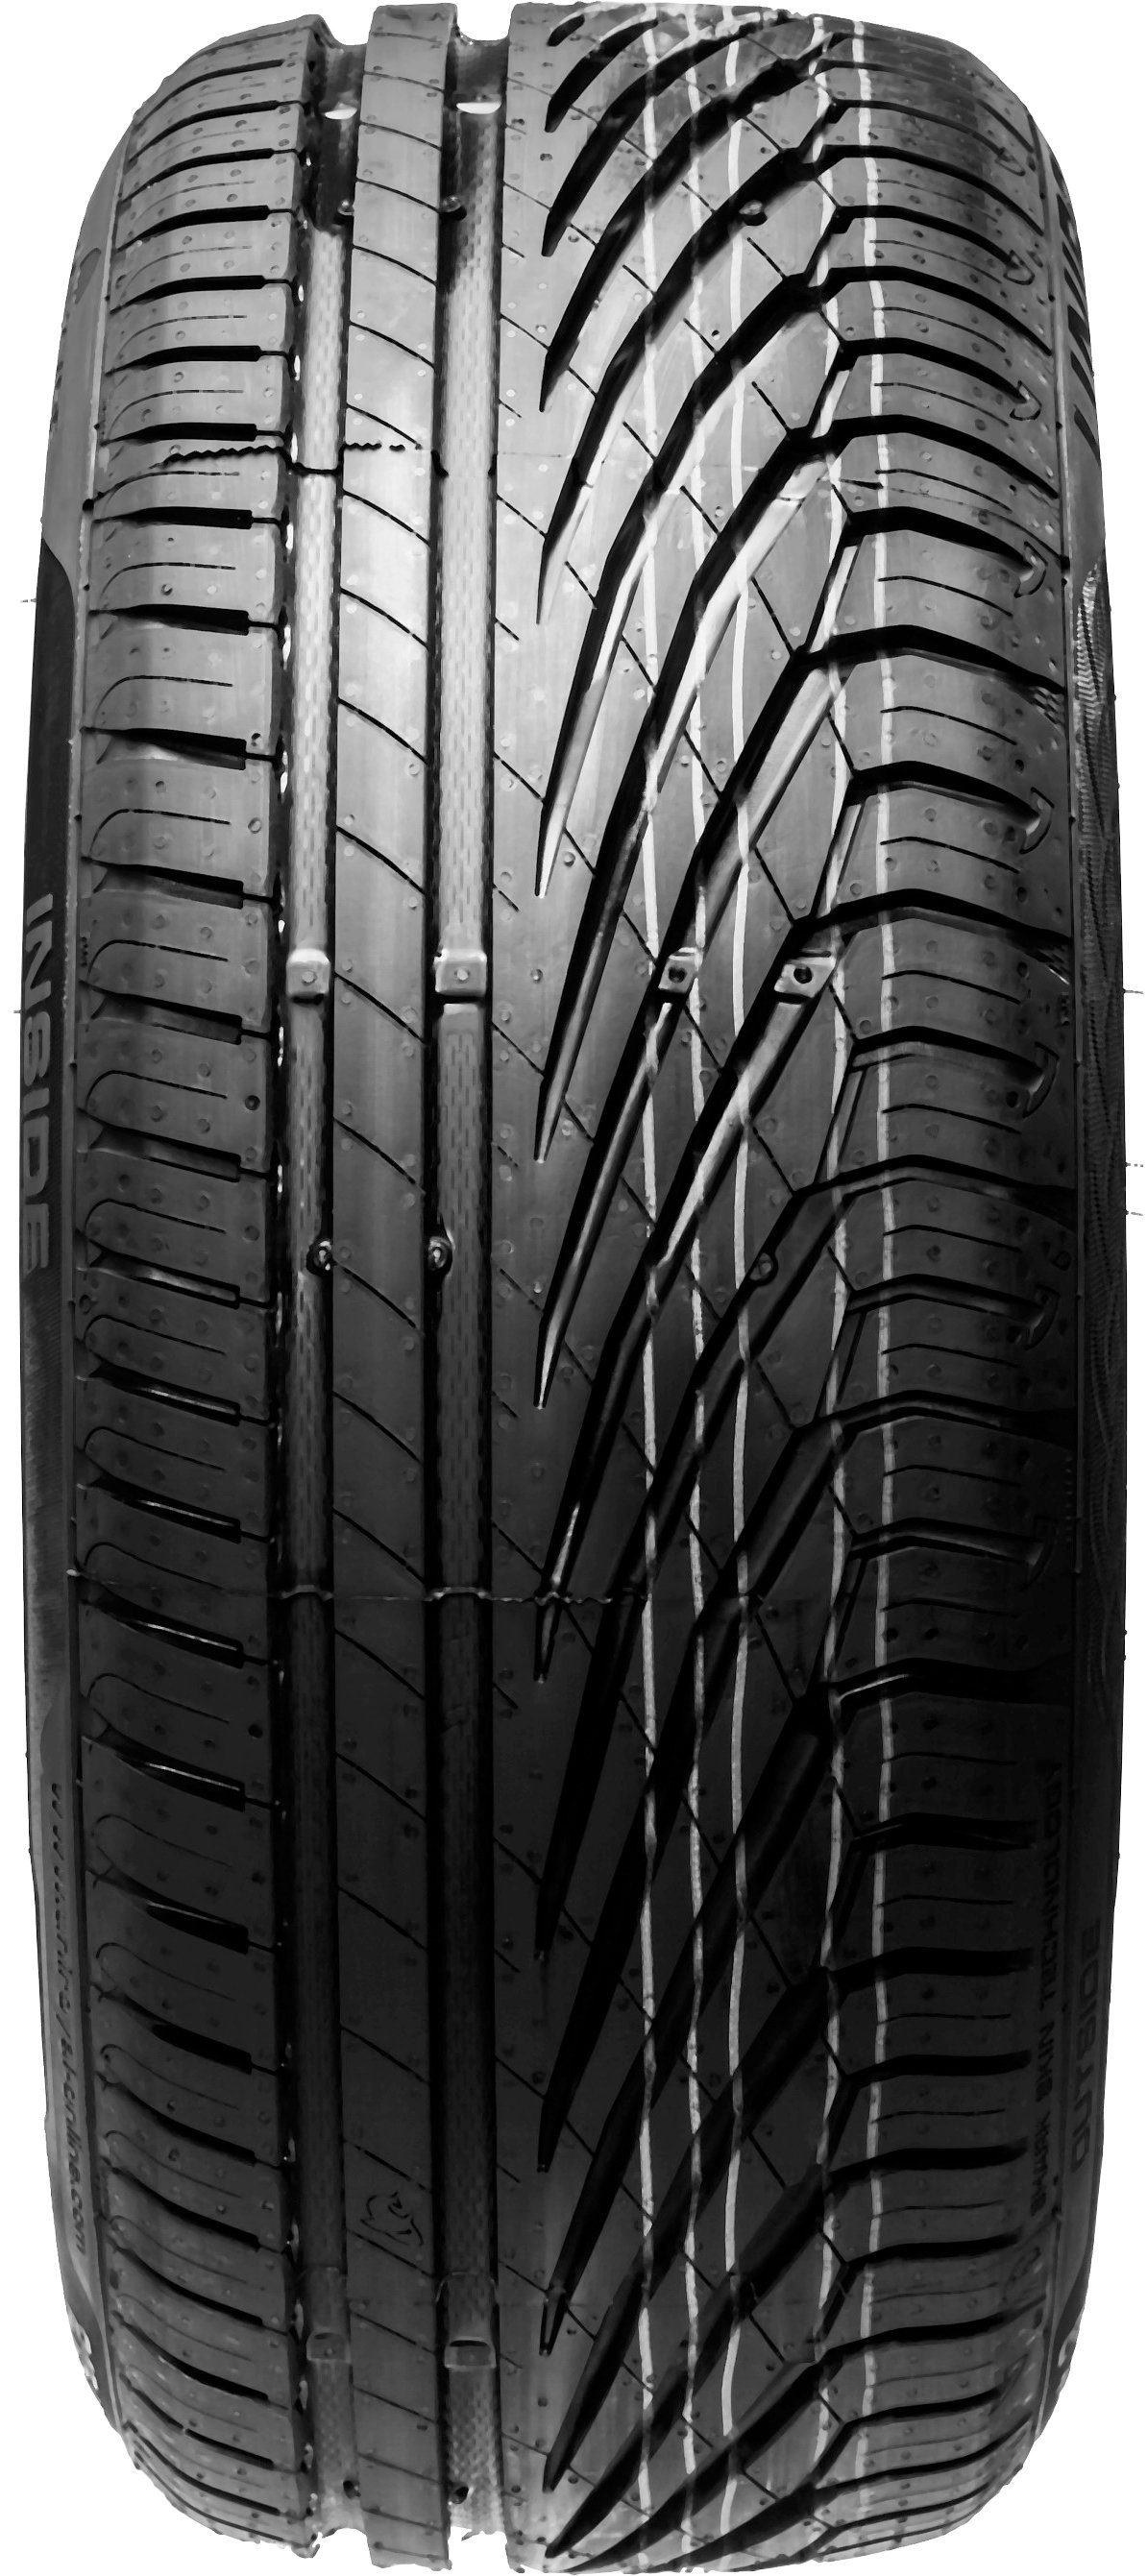 UNIROYAL Sommerreifen »RainSport 3«, 265/35 R19 98Y XL